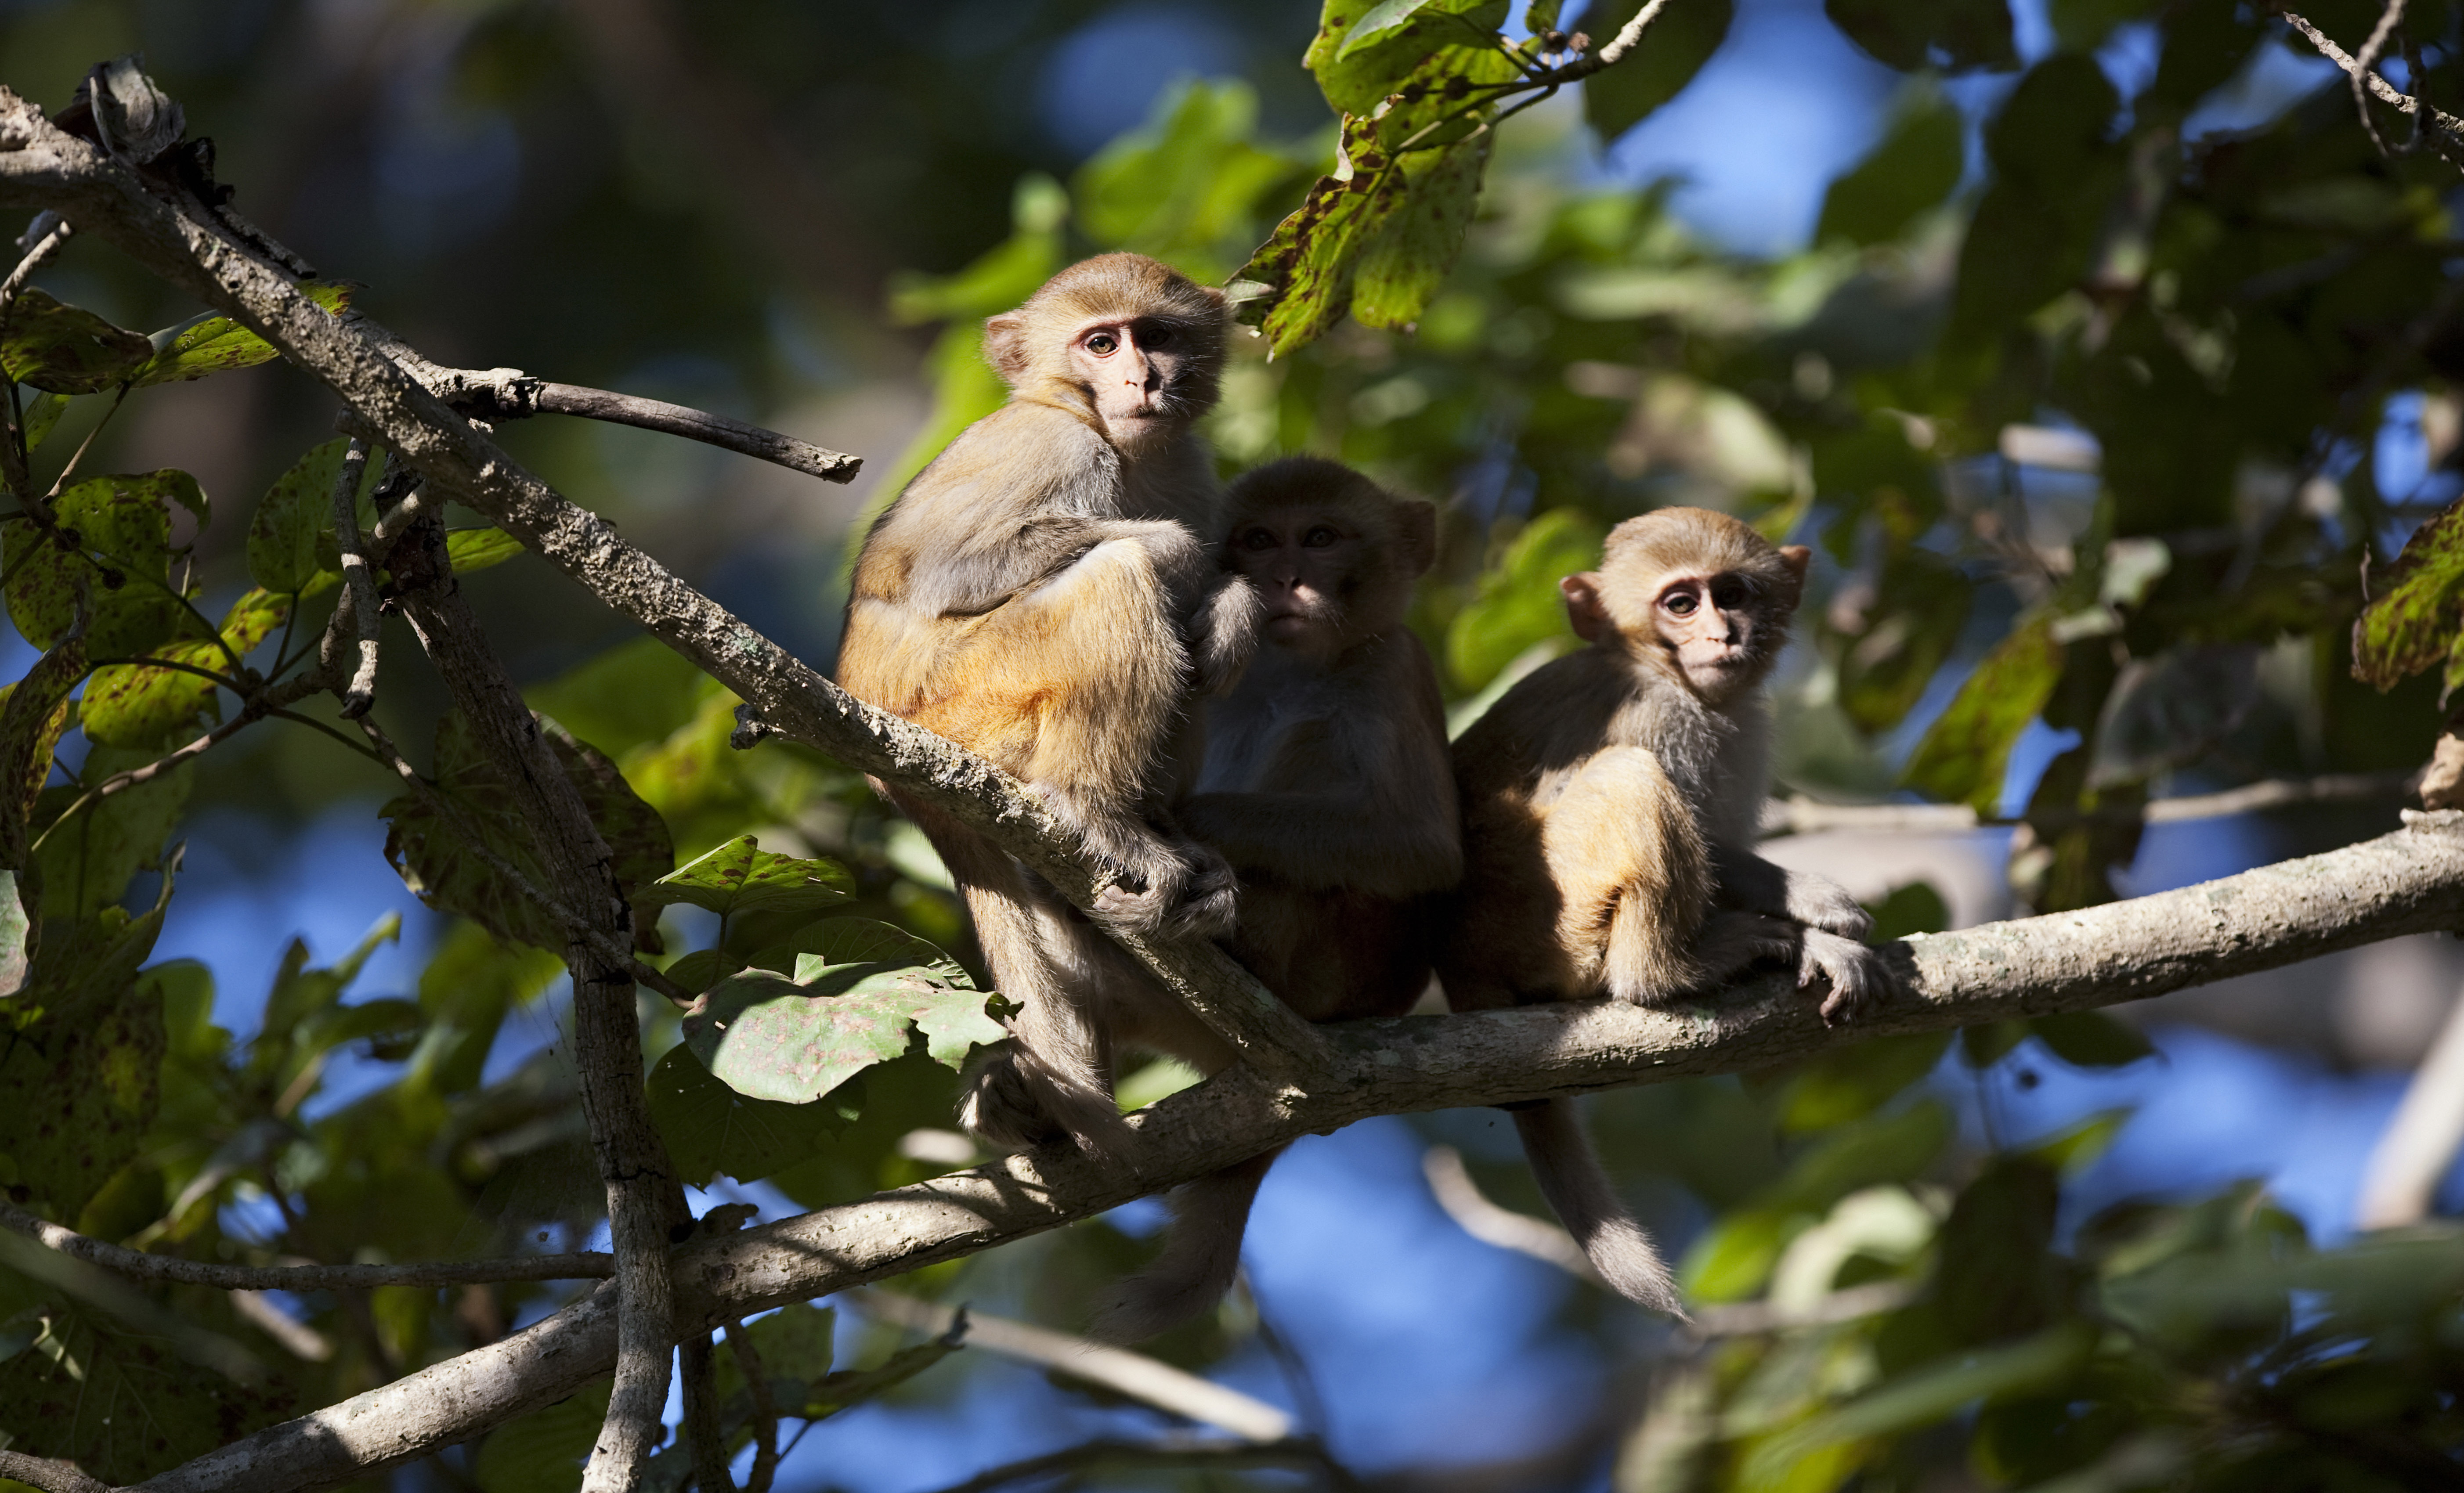 Florida man's latest worry: Killer herpes from wild monkeys | Ars